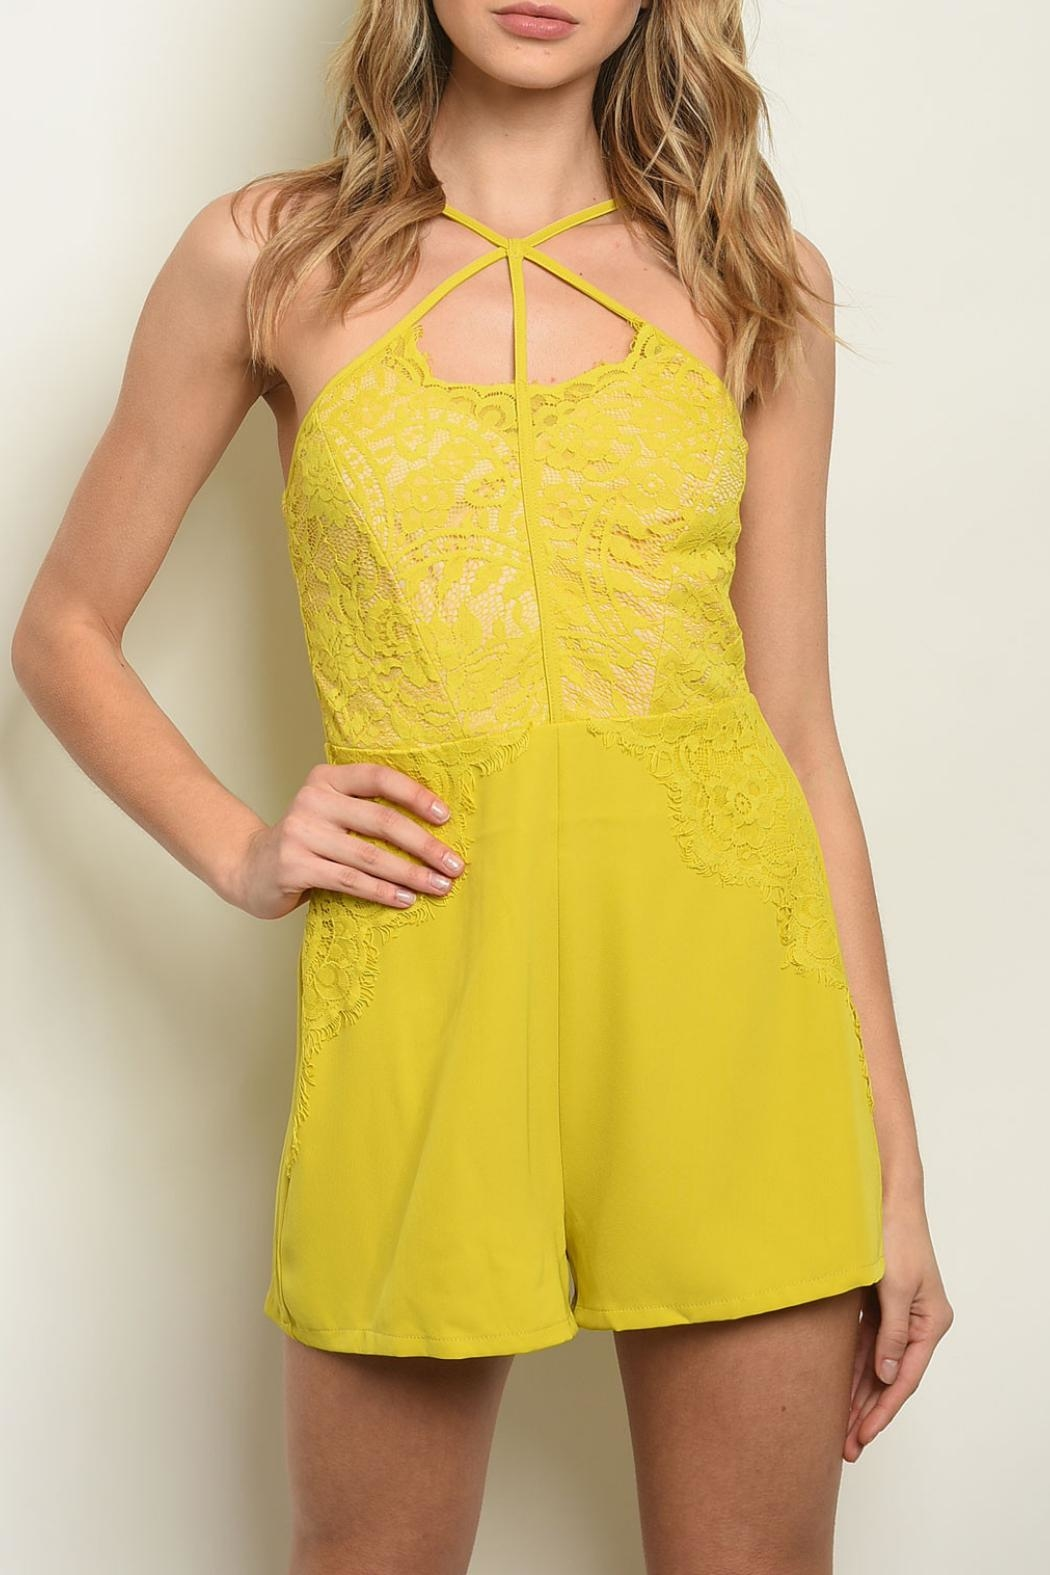 Shop The Trends  Mustard Lace Romper - Main Image